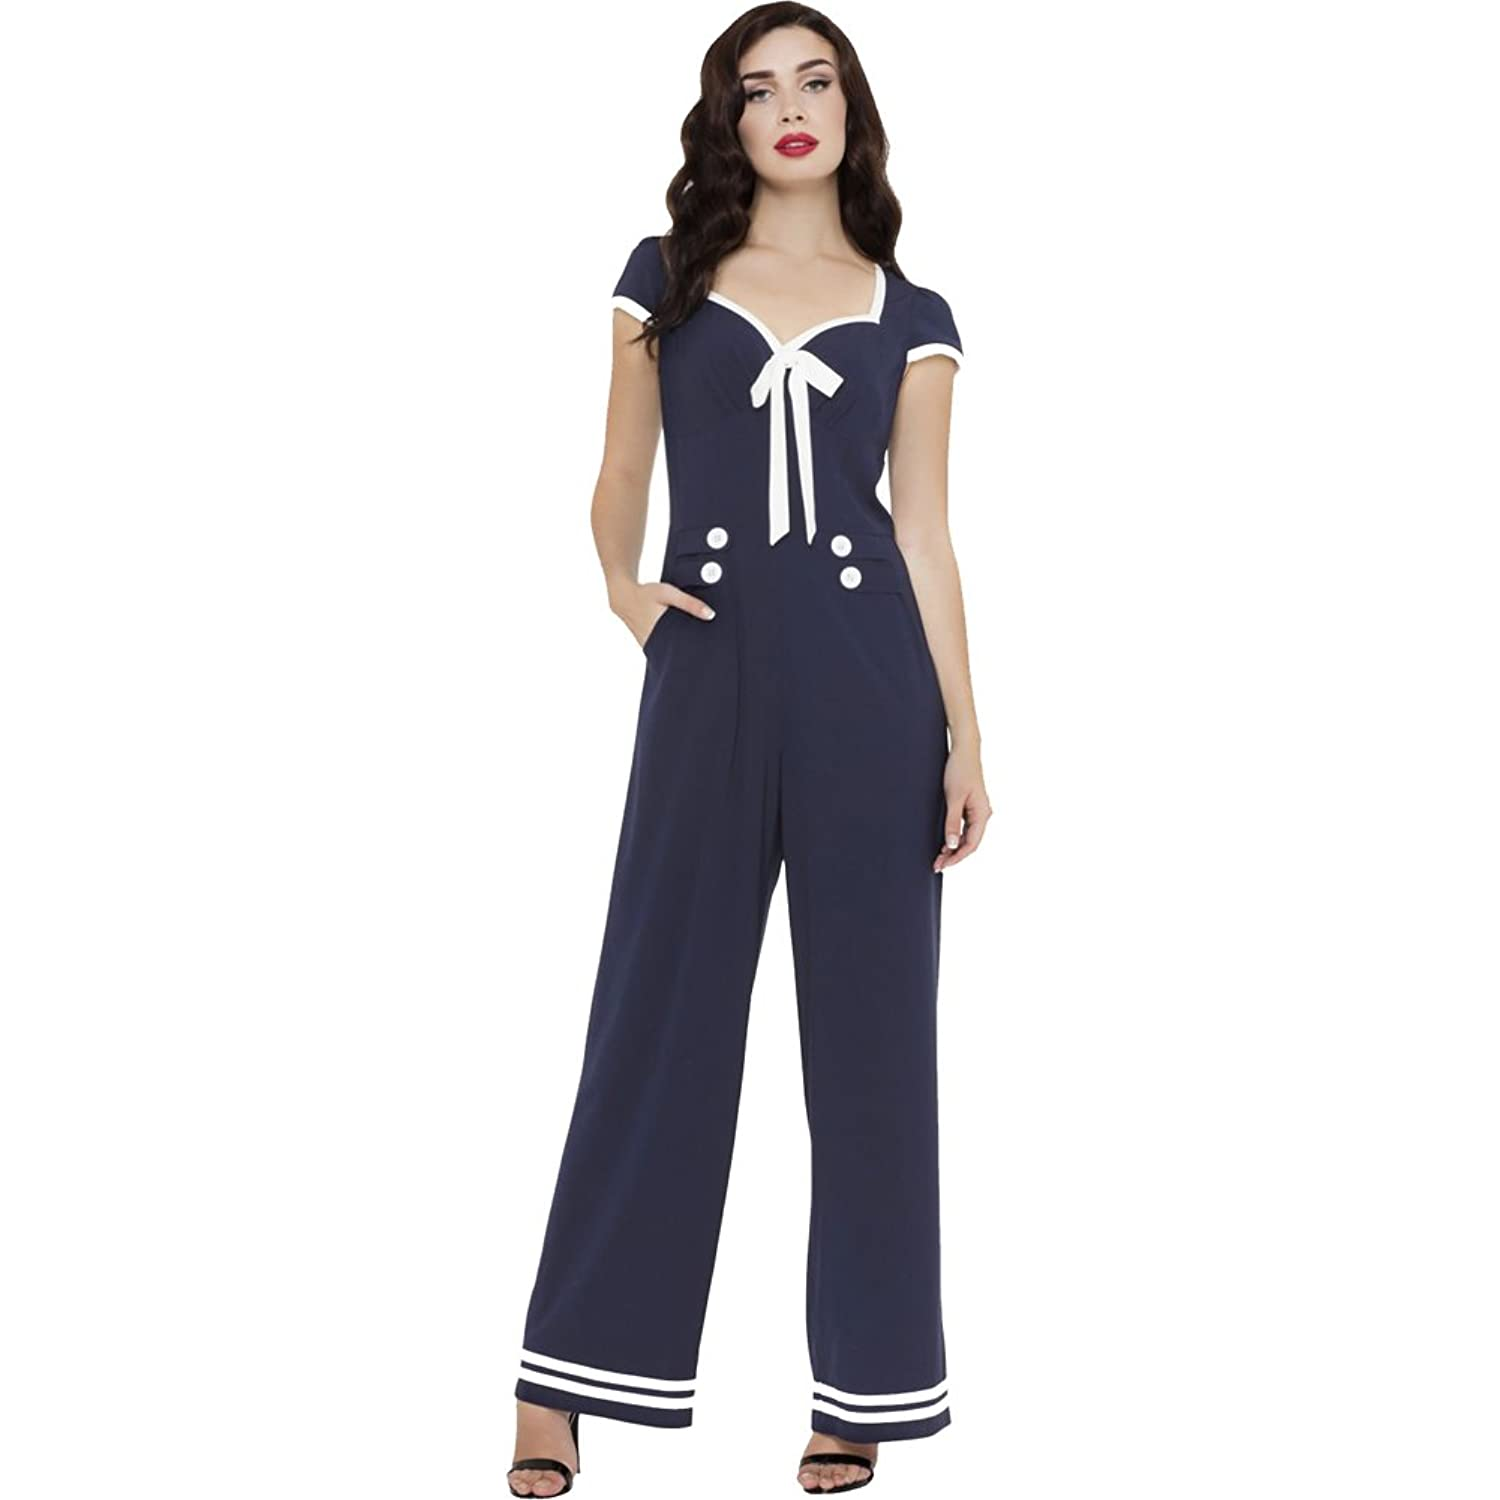 Vintage Overalls 1910s -1950s Pictures and History Womens Voodoo Vixen JOLENE Nautical Stripped Wide Leg Jumpsuit Navy $68.99 AT vintagedancer.com